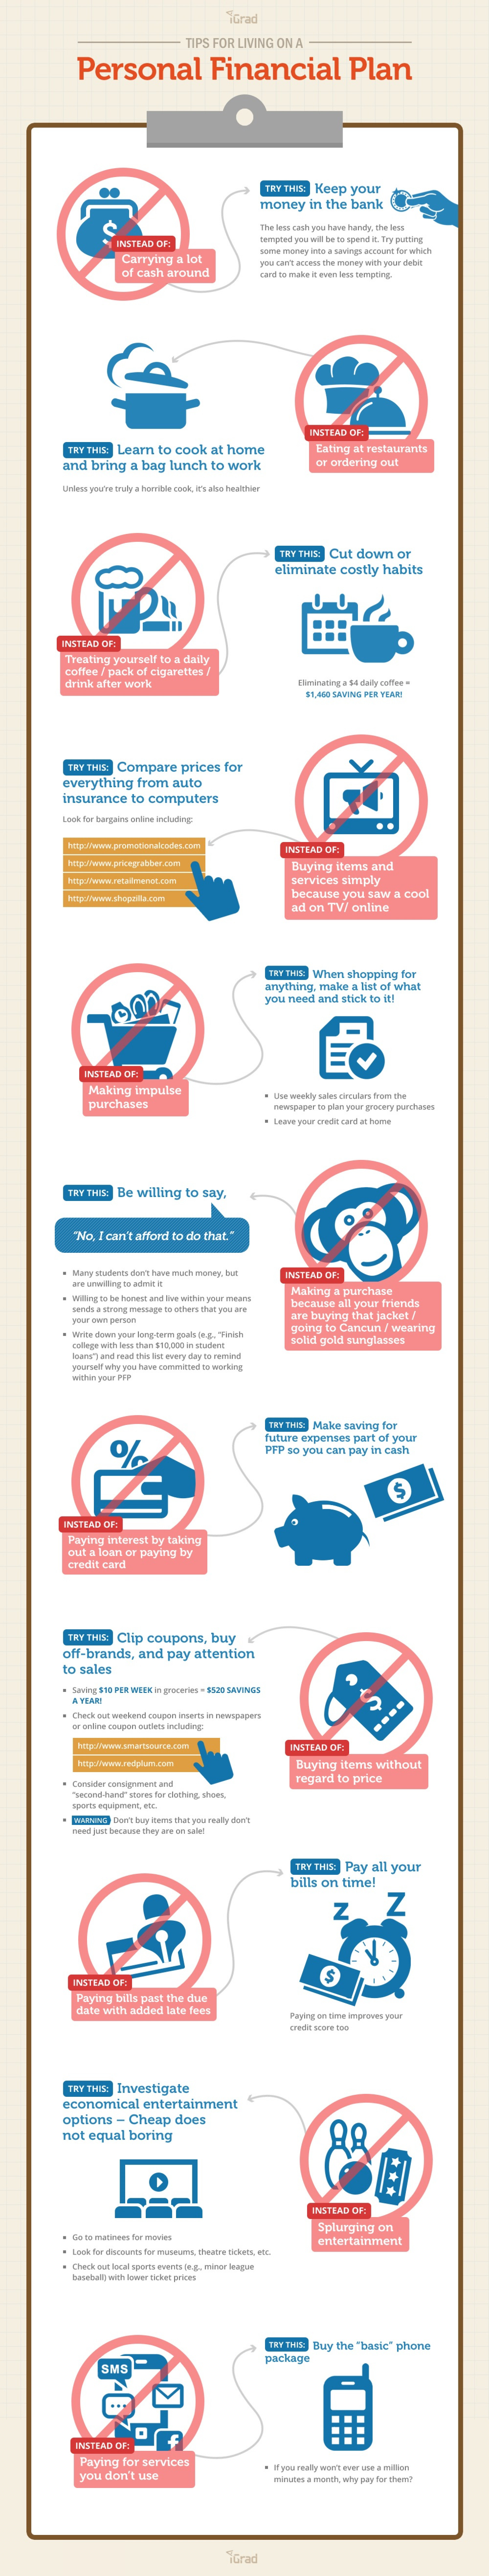 Tips for Living on a Personal Financial Plan Infographic